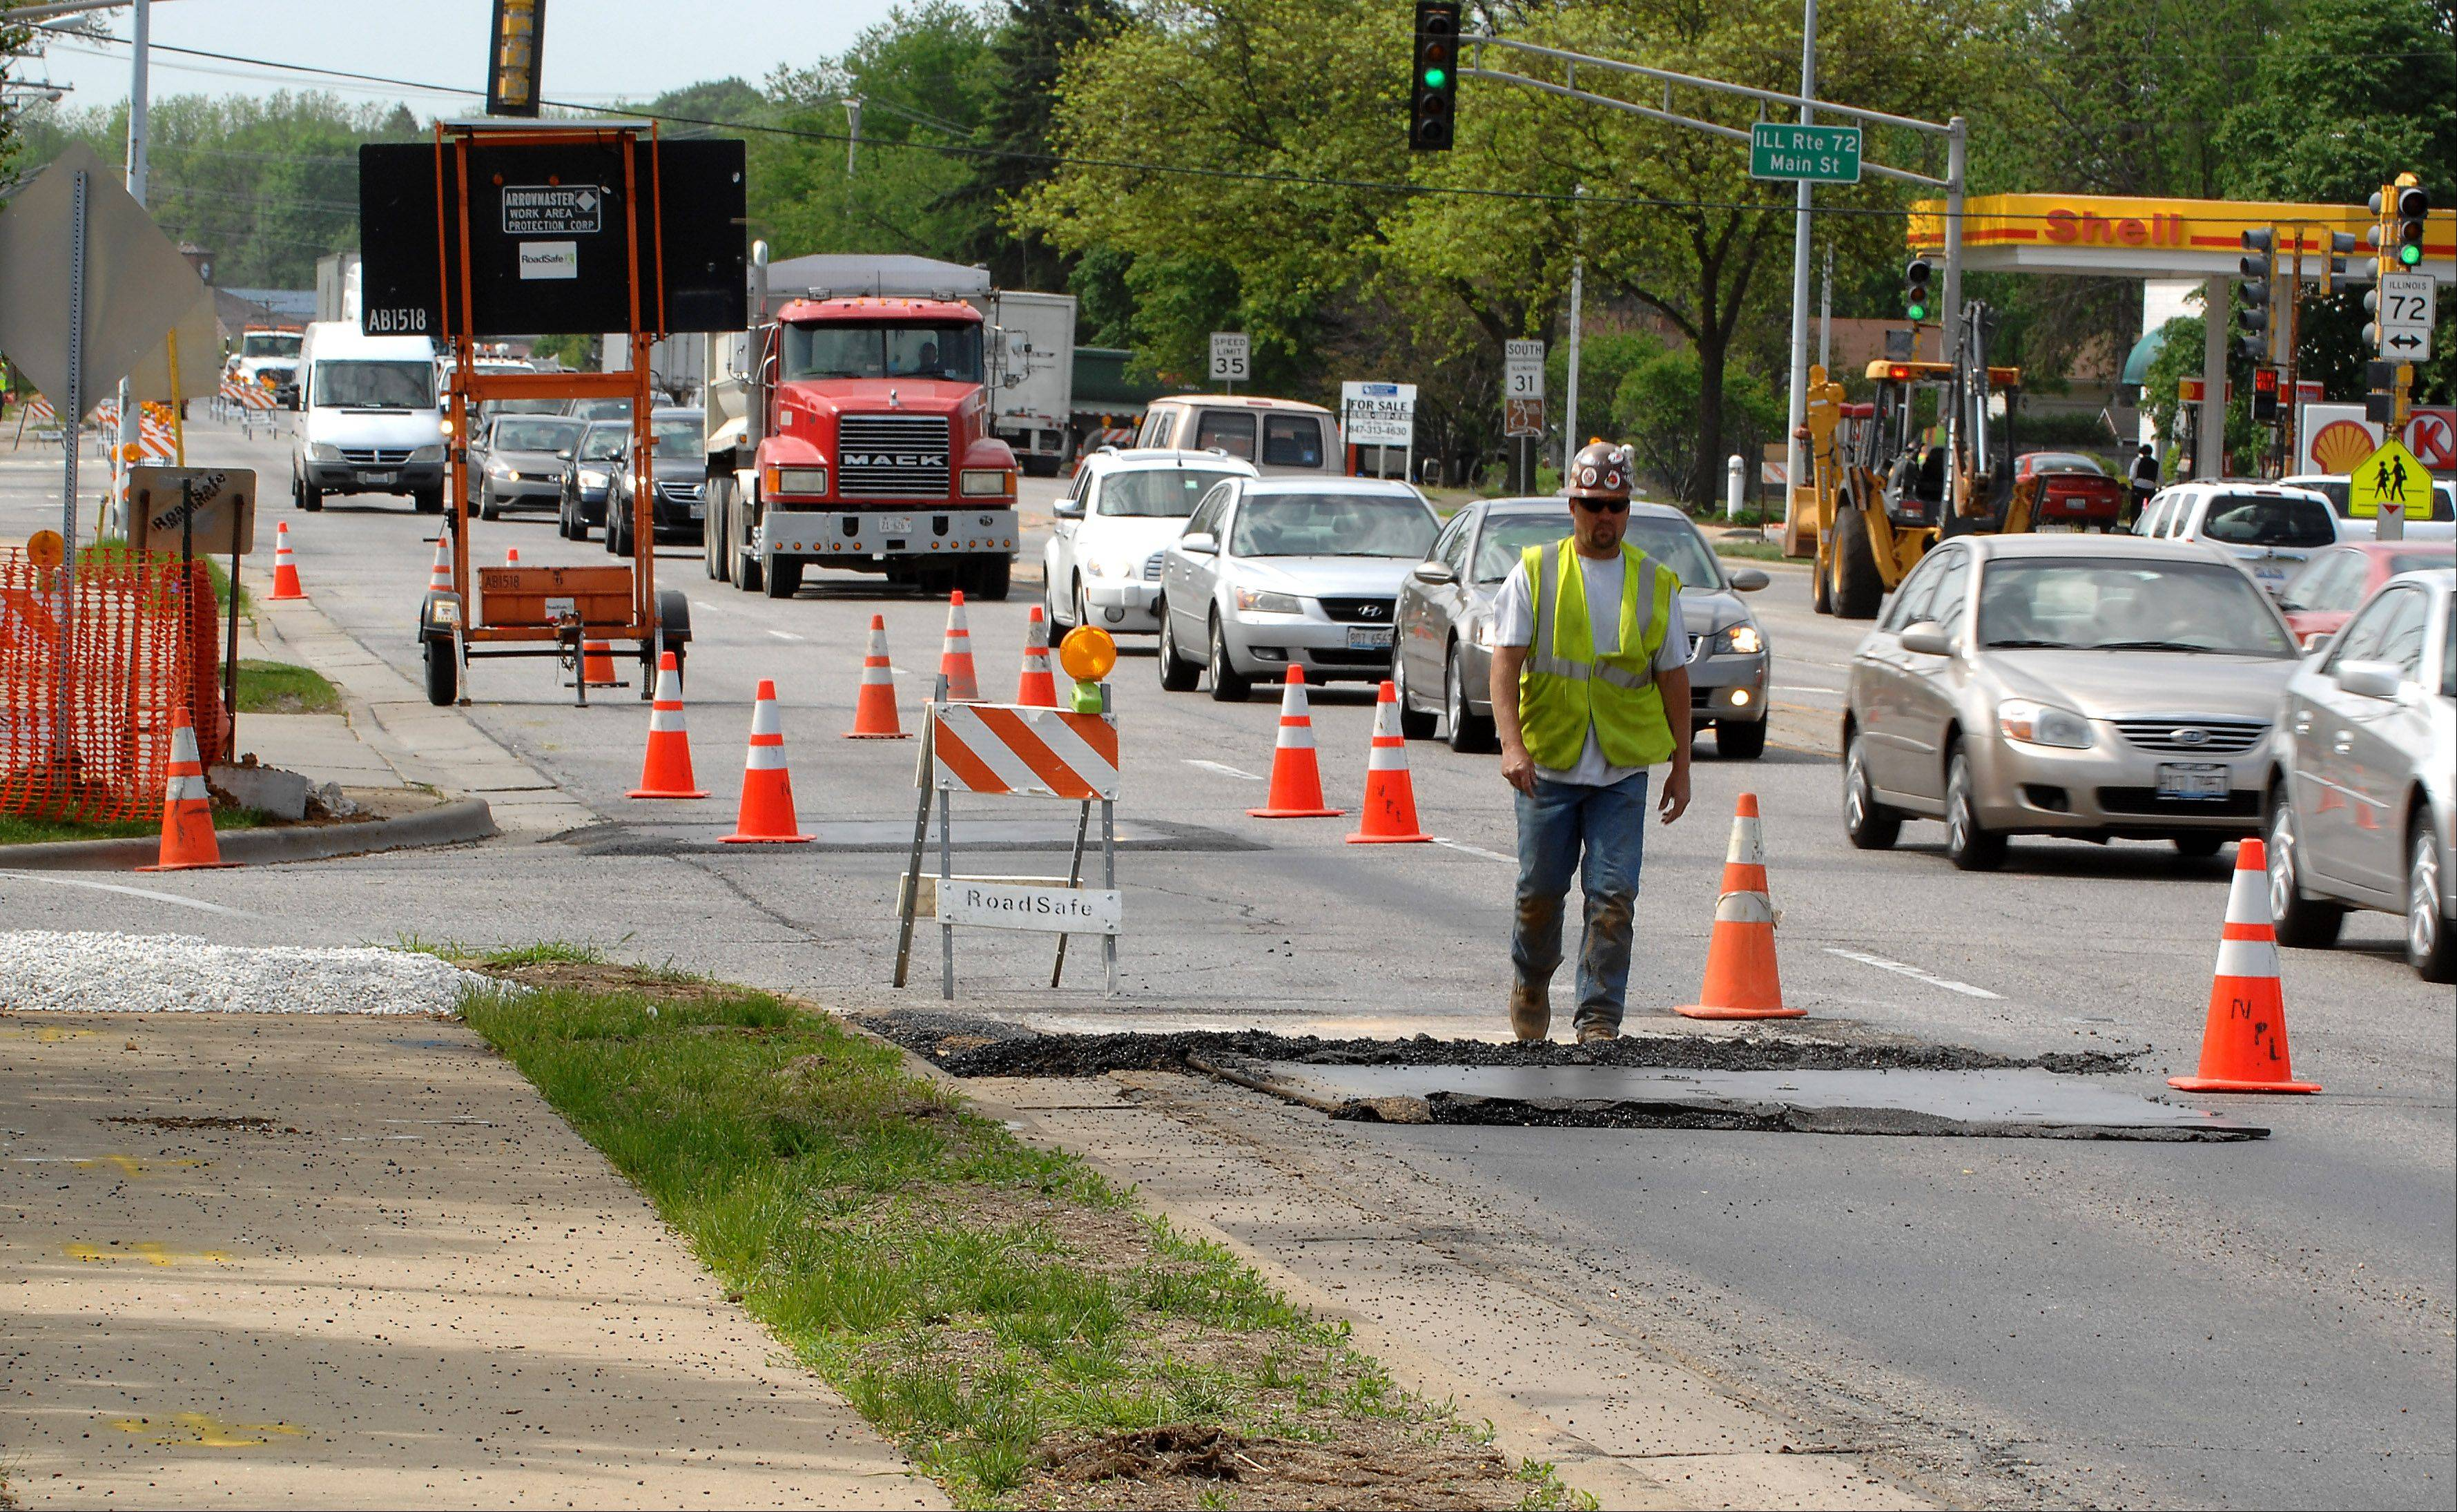 Preparations are under way for widening of the intersection of Route 72 and Route 31. Daily lane closures will be the norm for the next six months, officials say.